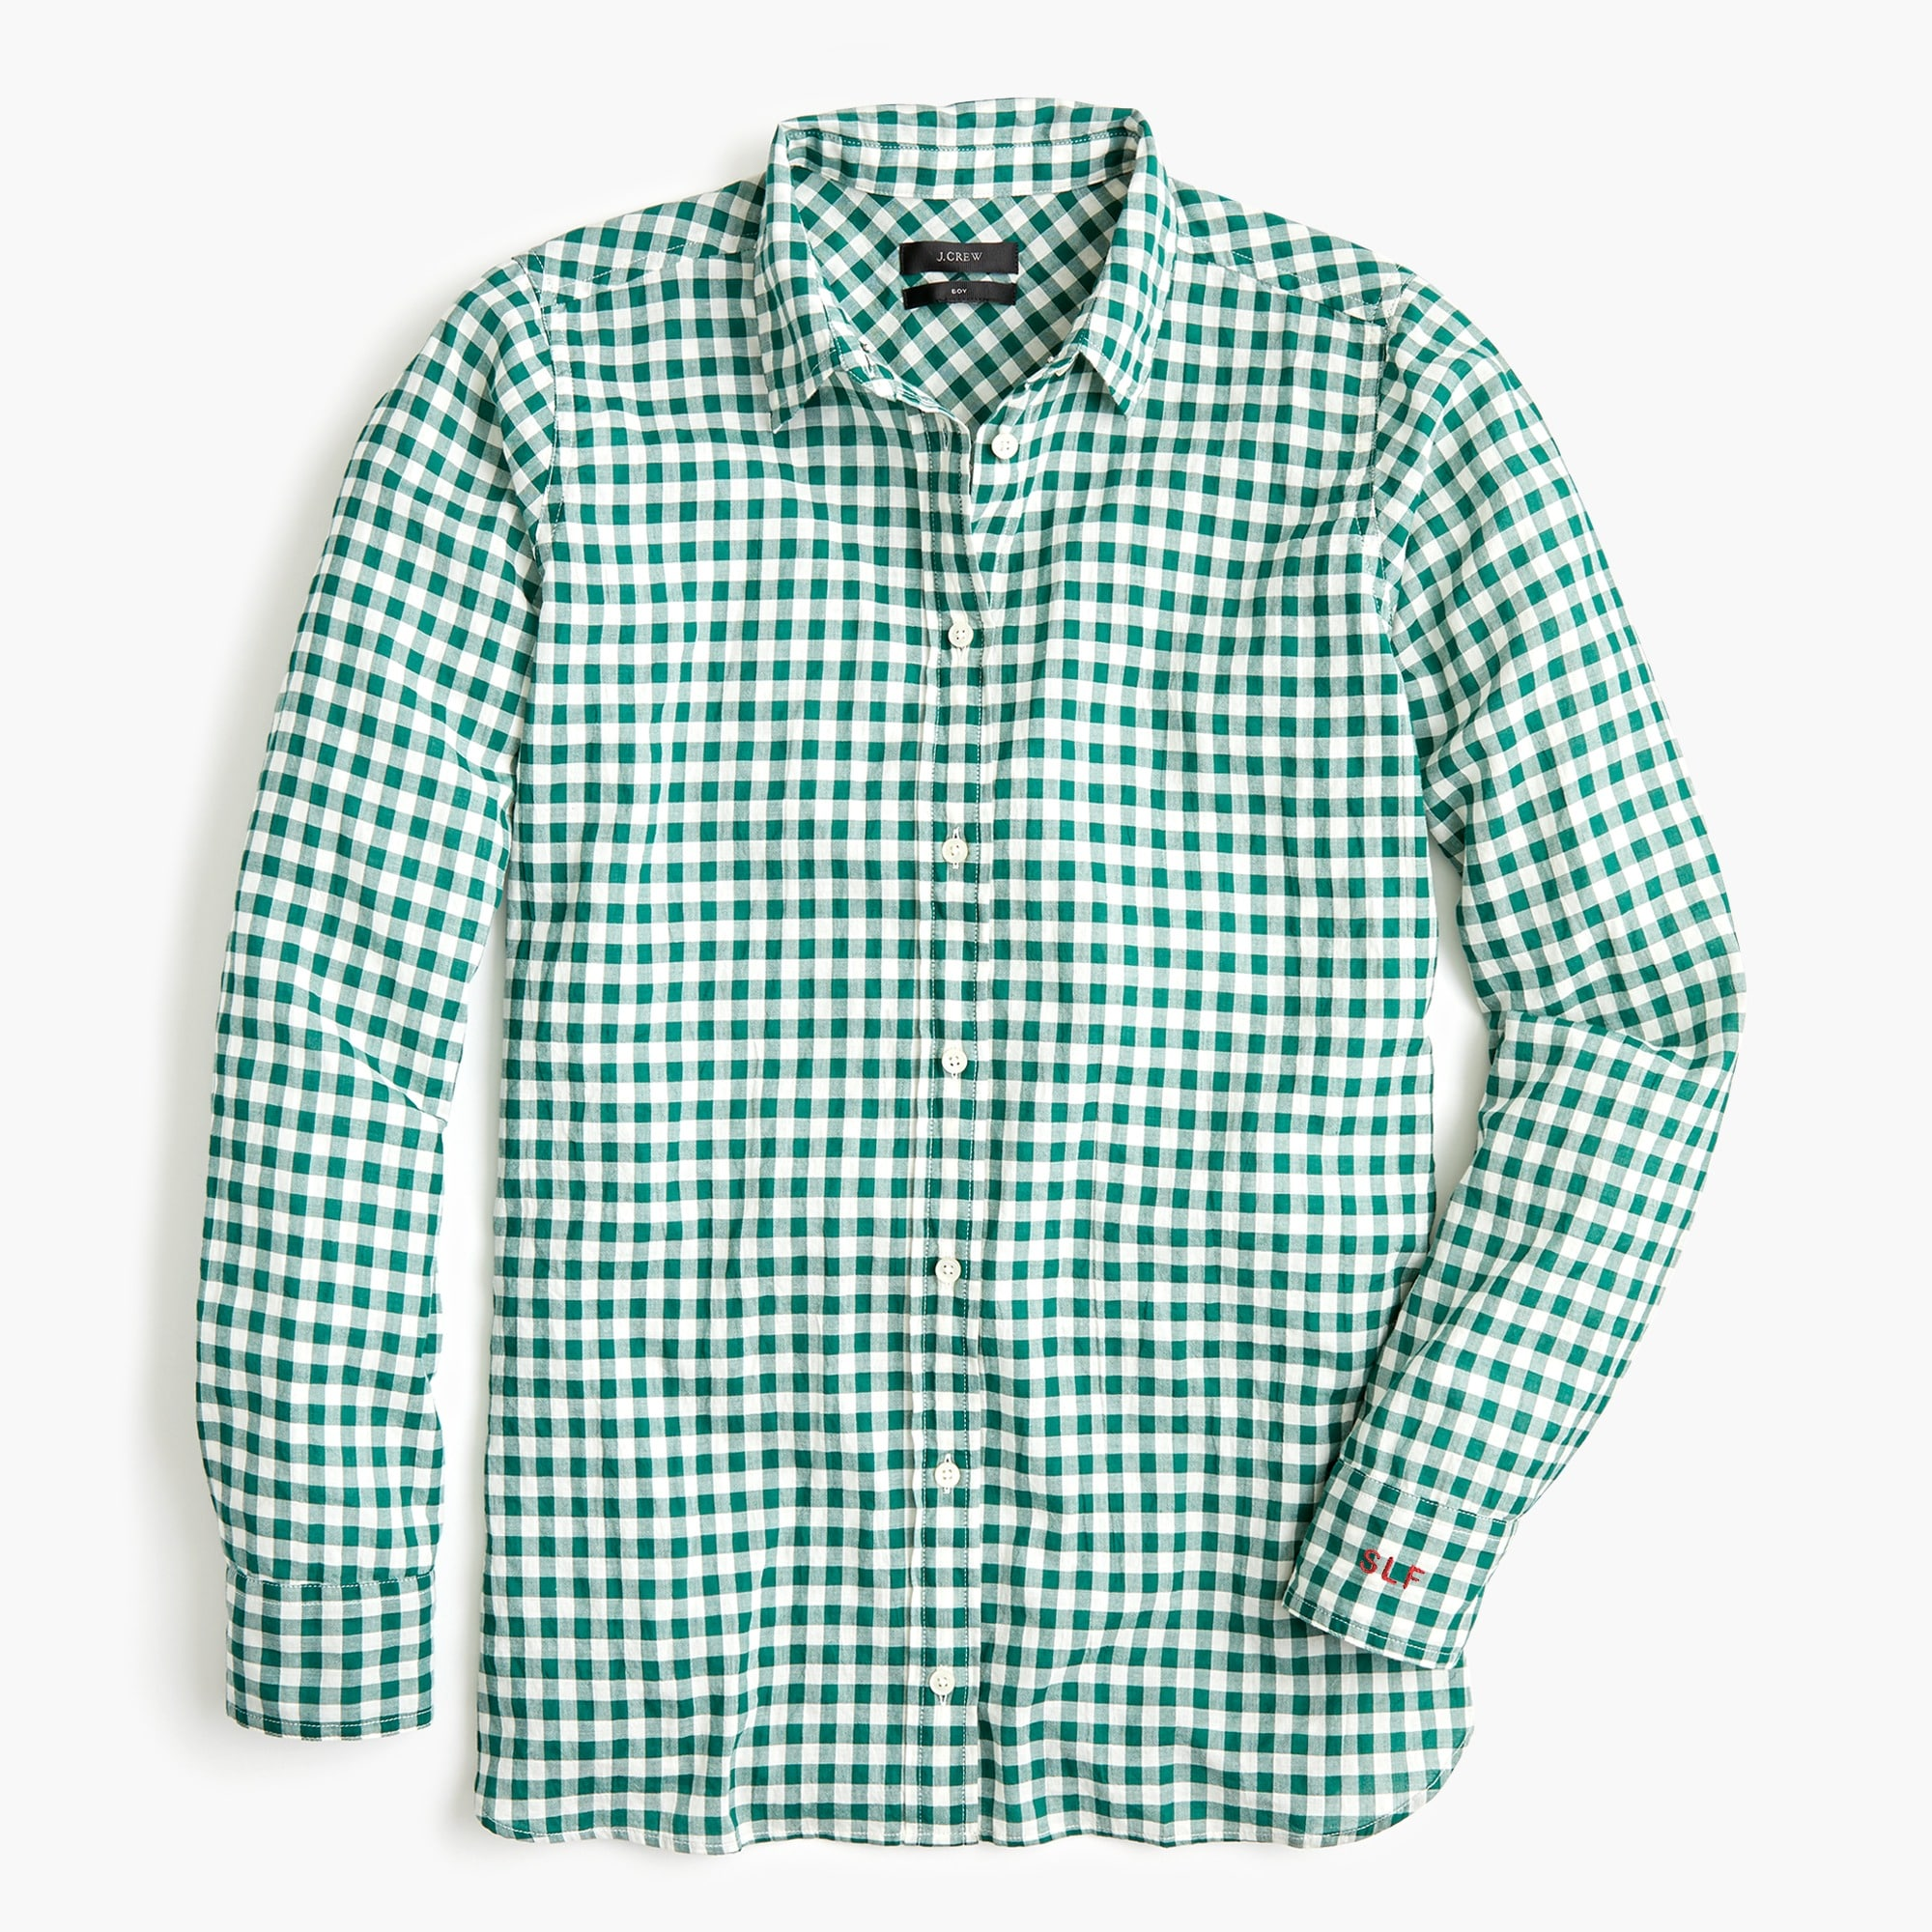 Image 6 for Classic-fit boy shirt in crinkle gingham